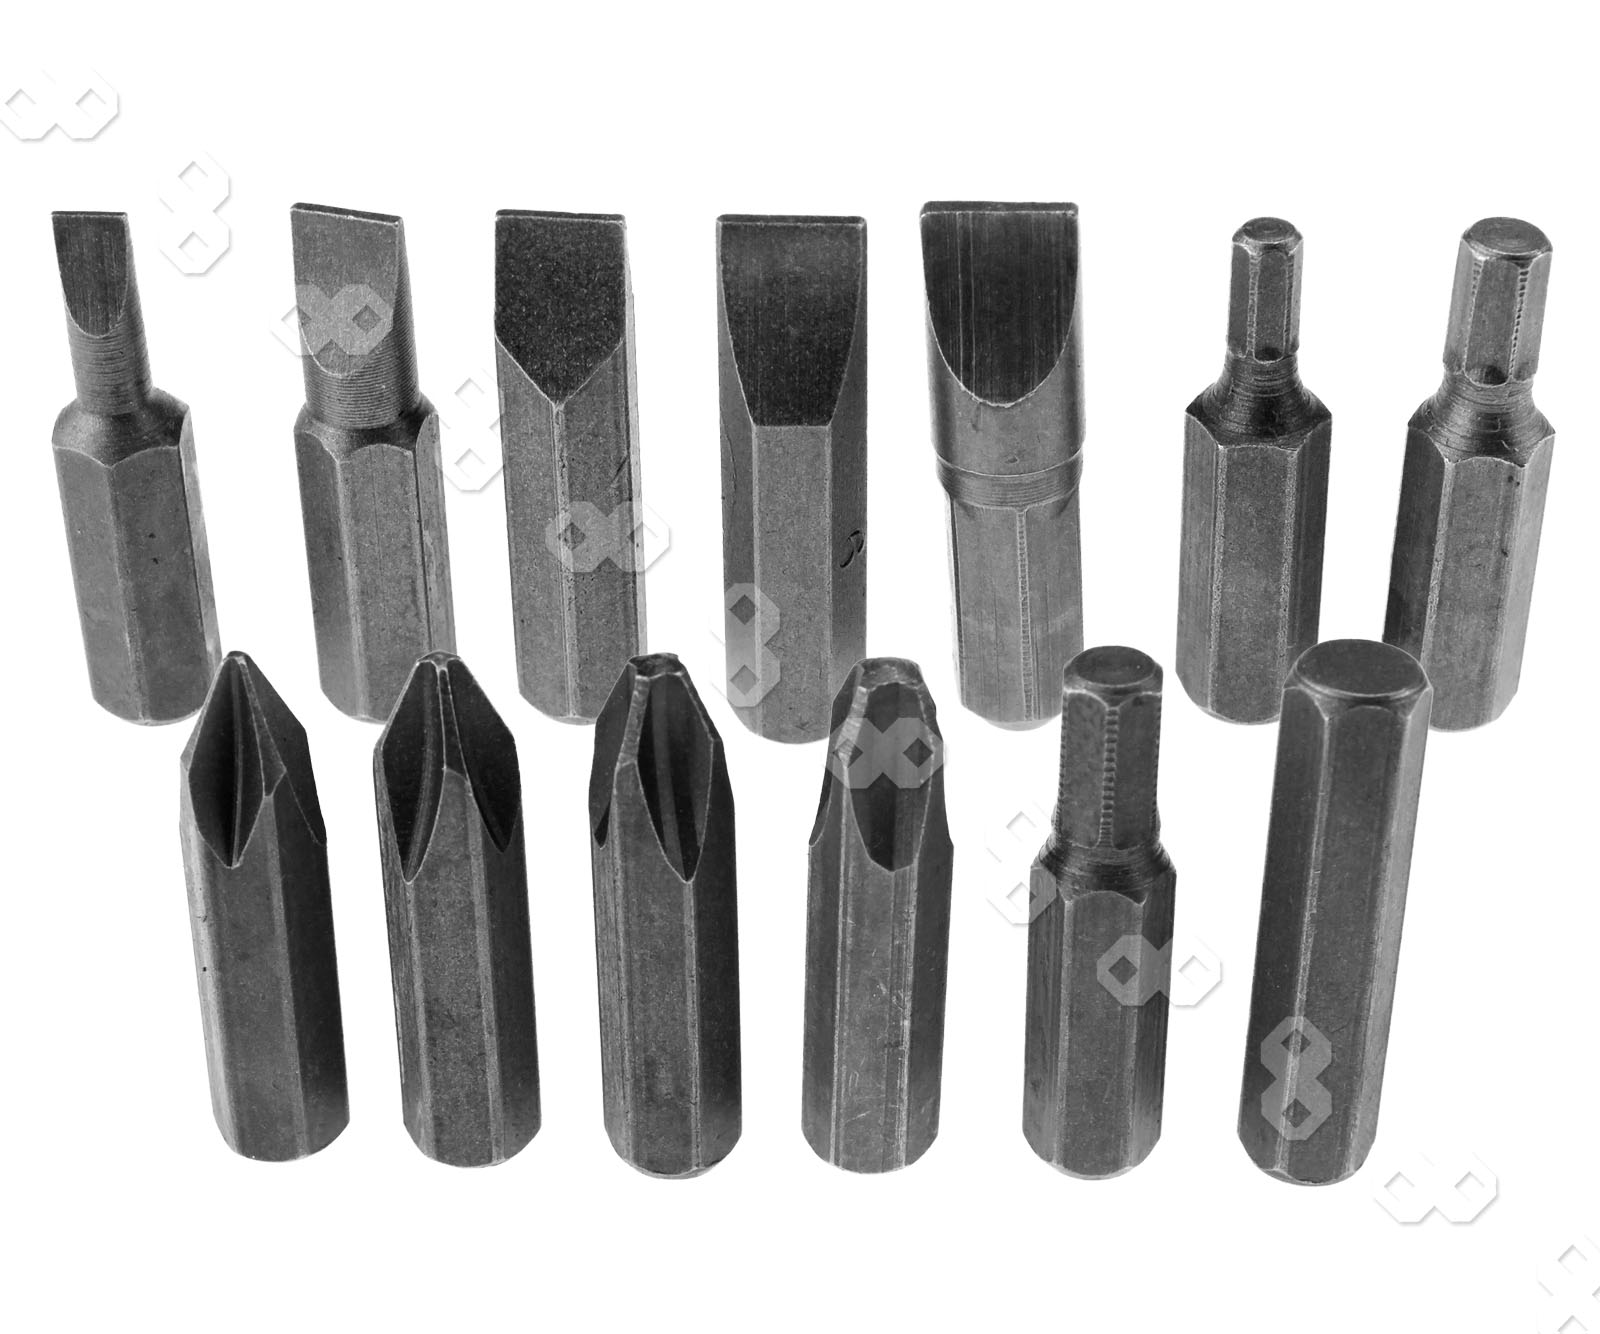 promotion 13pcs impact screwdriver philips flat hex bits. Black Bedroom Furniture Sets. Home Design Ideas